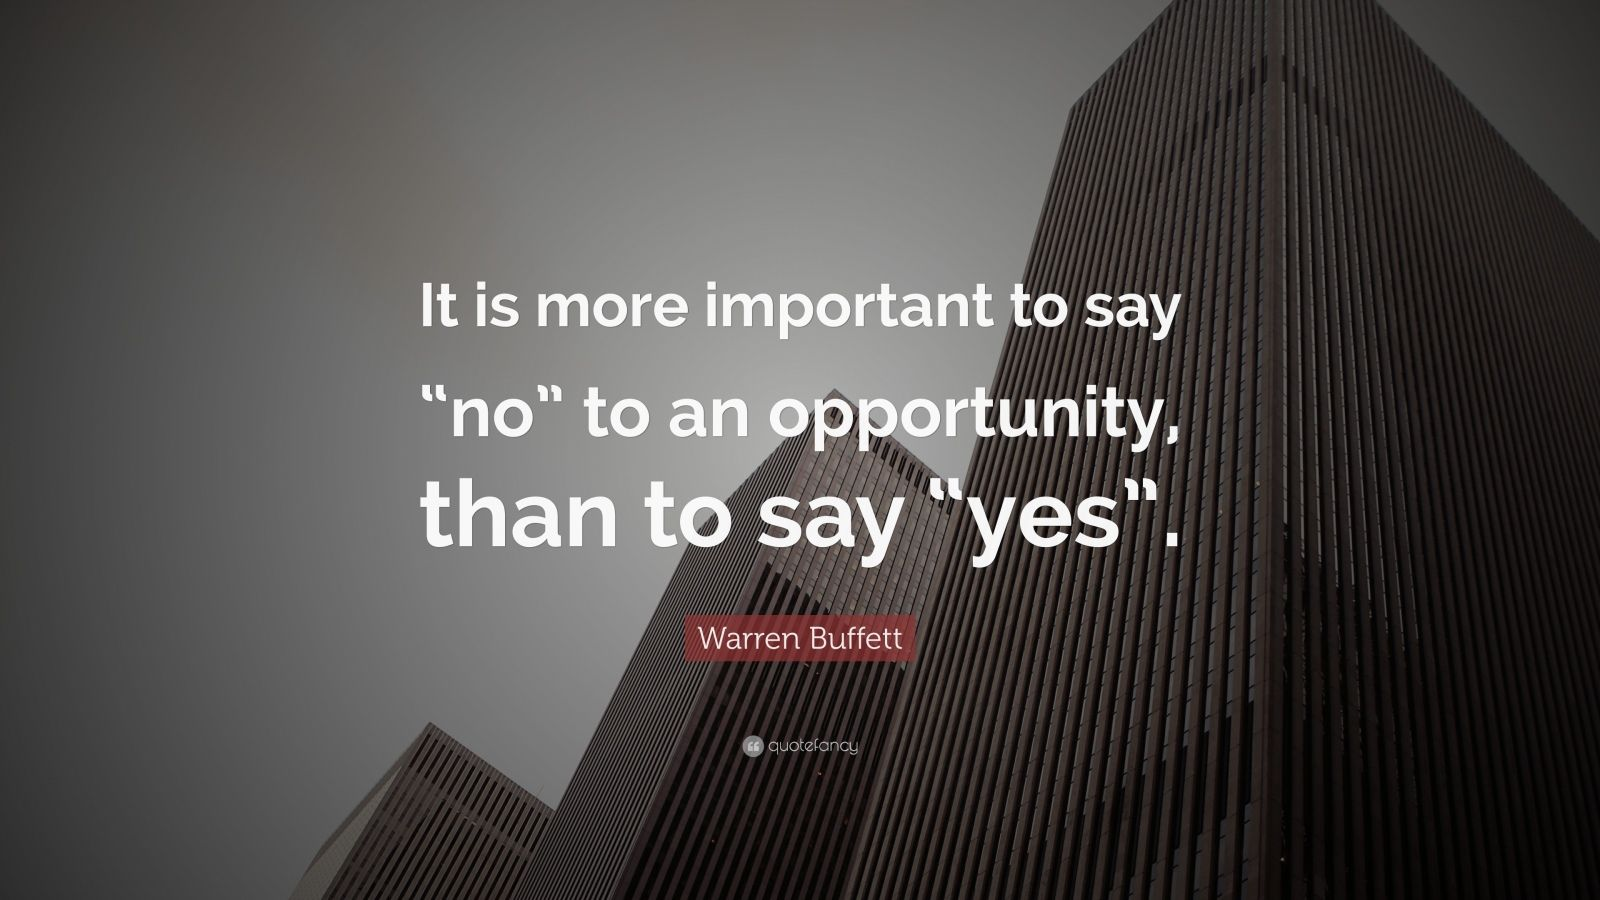 """Warren Buffett Quote: """"It is more important to say """"no"""" to an opportunity, than to say """"yes""""."""""""